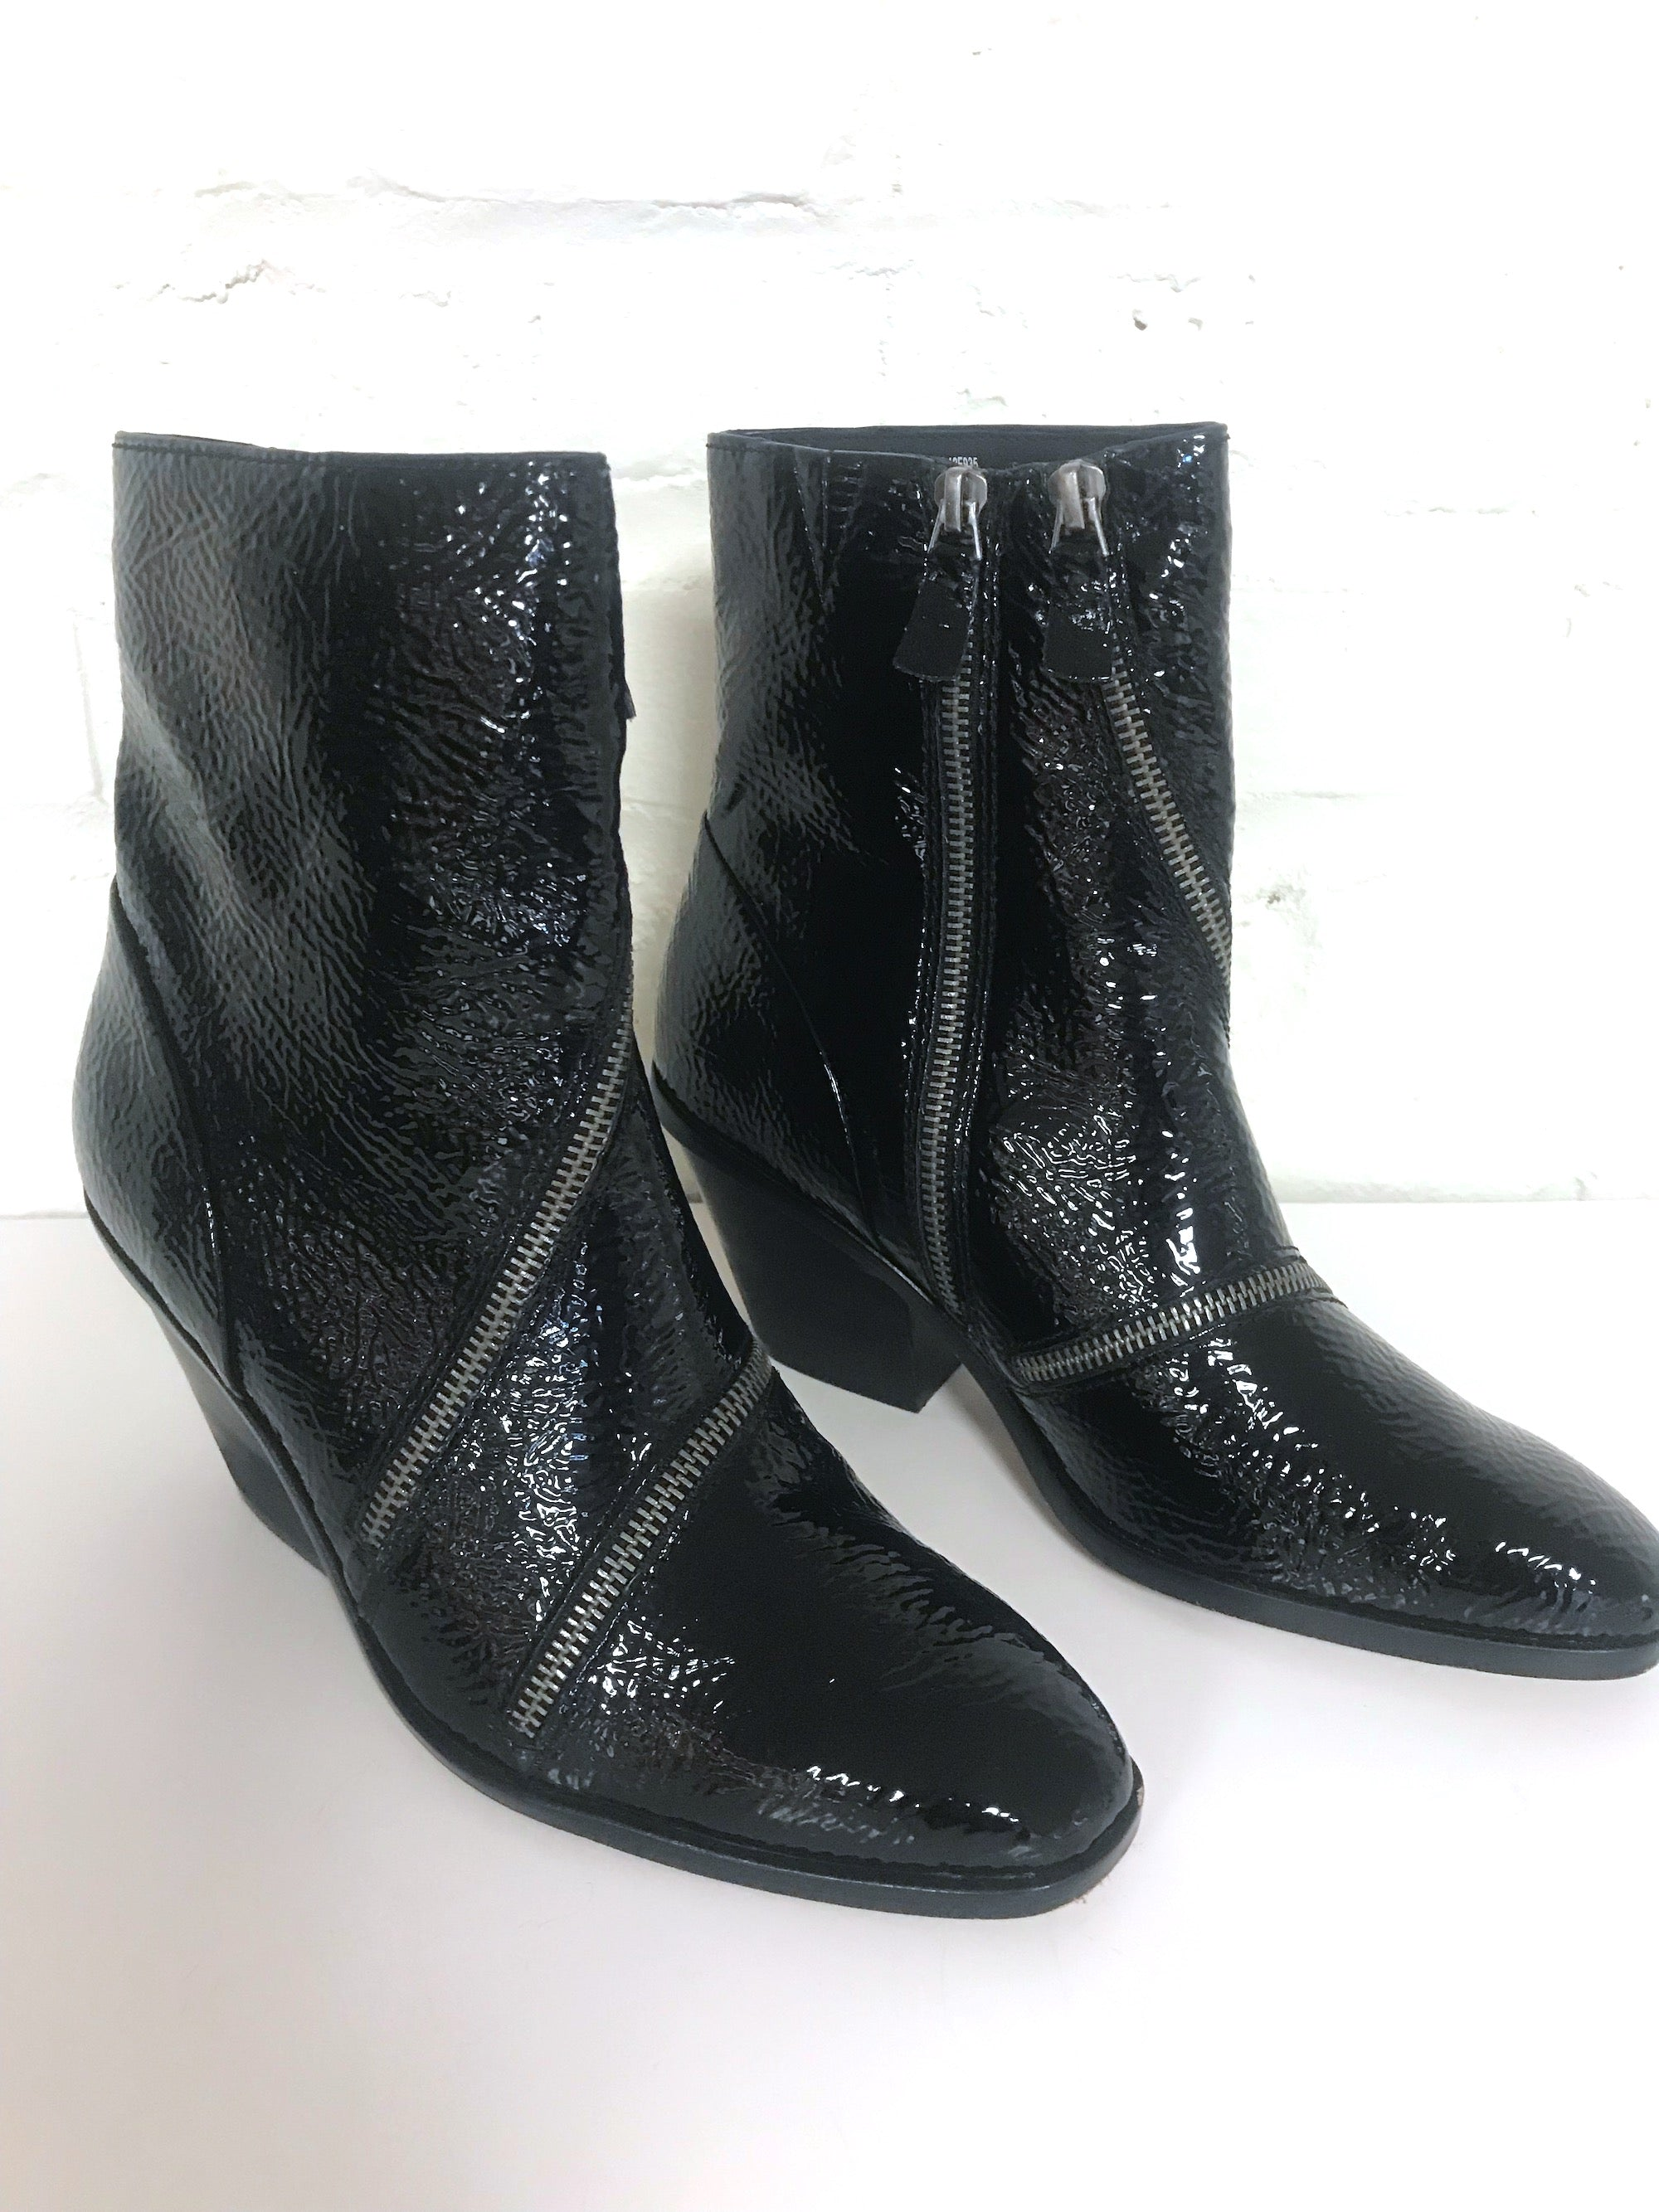 Patent Leather Zipper Boots